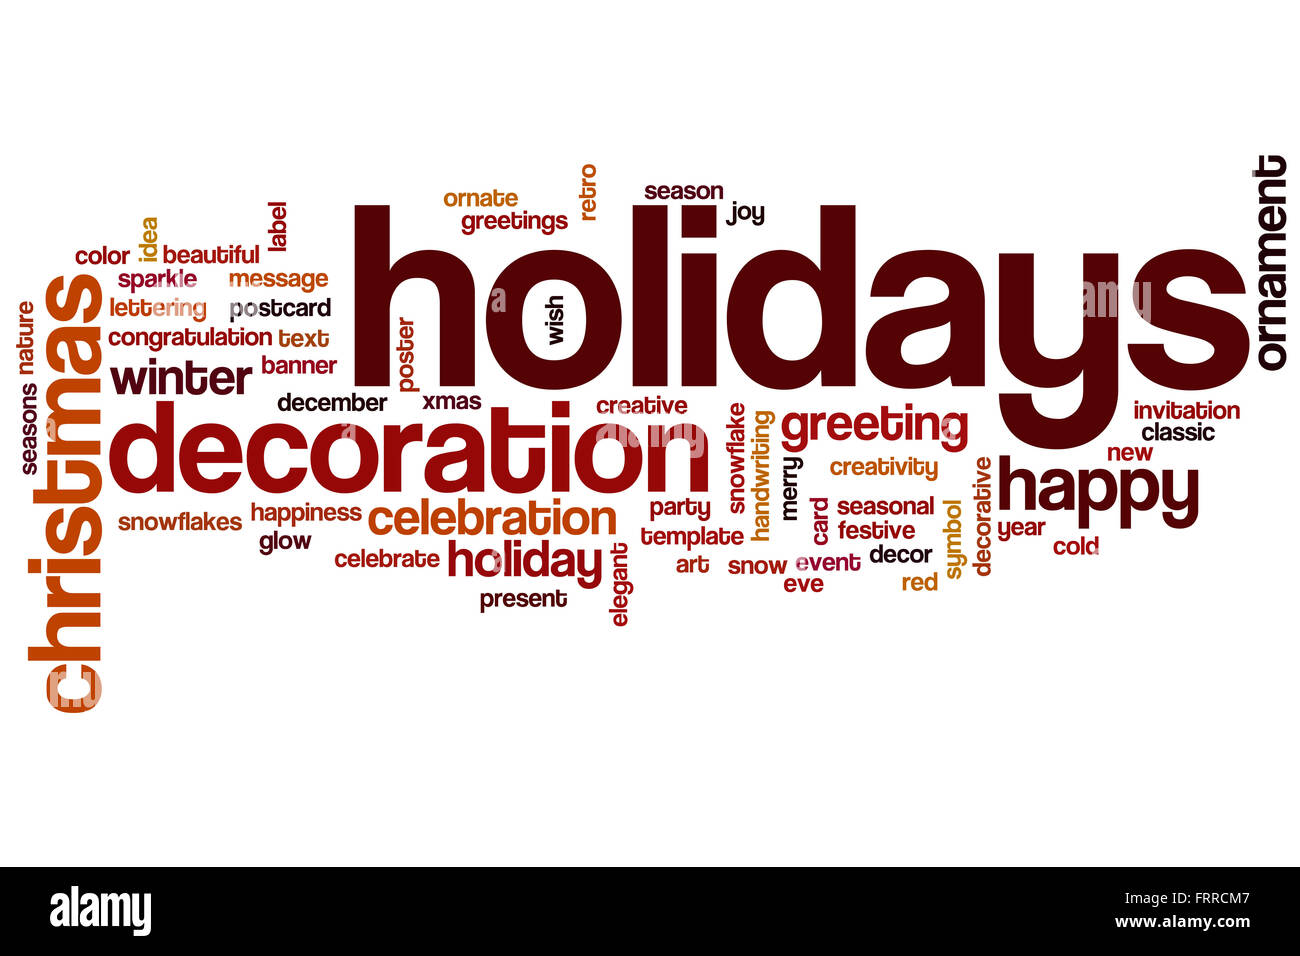 holidays word cloud concept with decoration winter related tags, Powerpoint templates